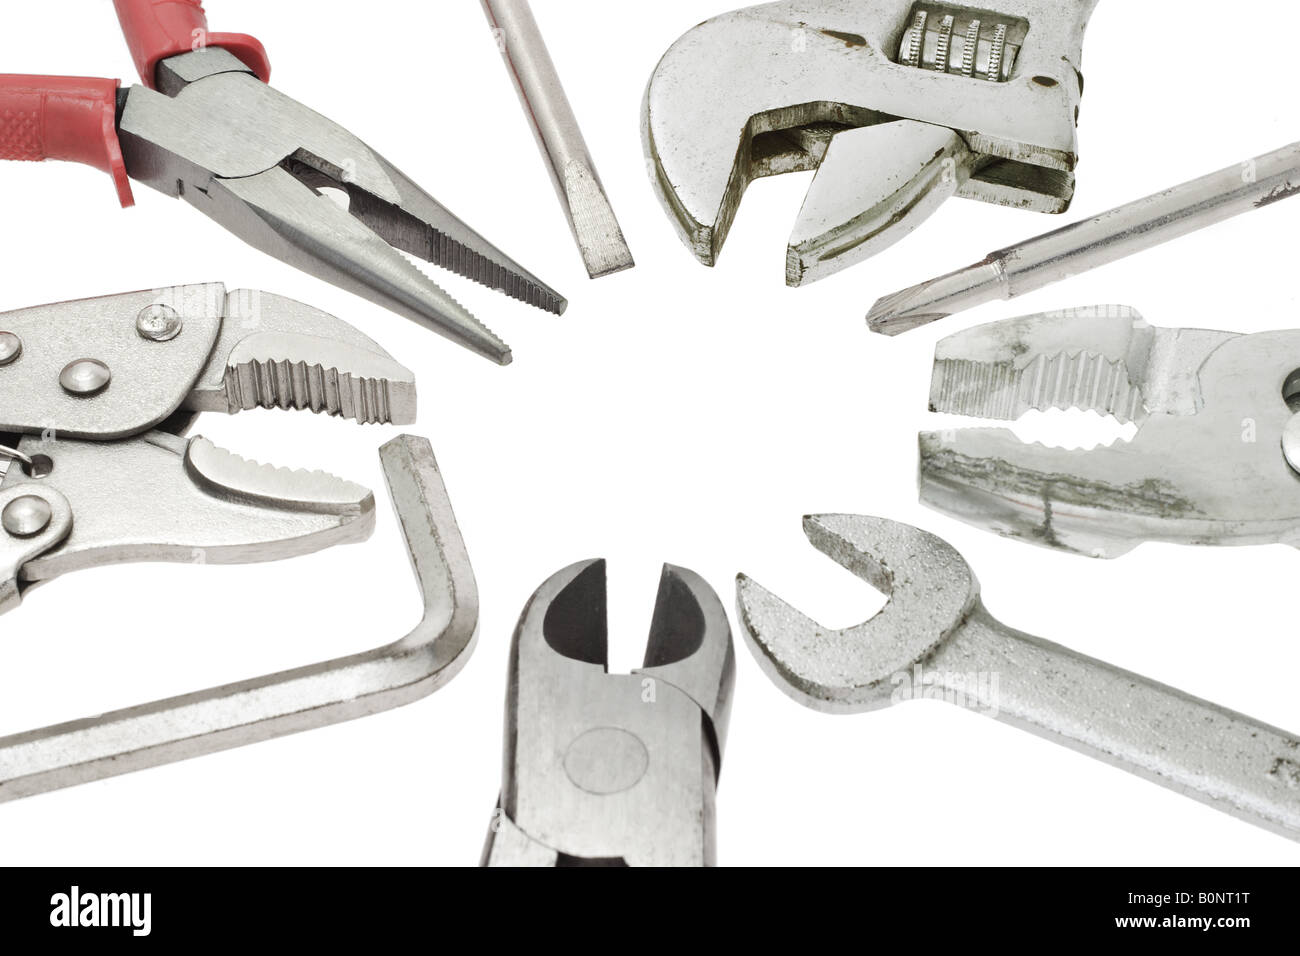 Do it yourself tools on white background stock photo 17690228 alamy do it yourself tools on white background solutioingenieria Gallery